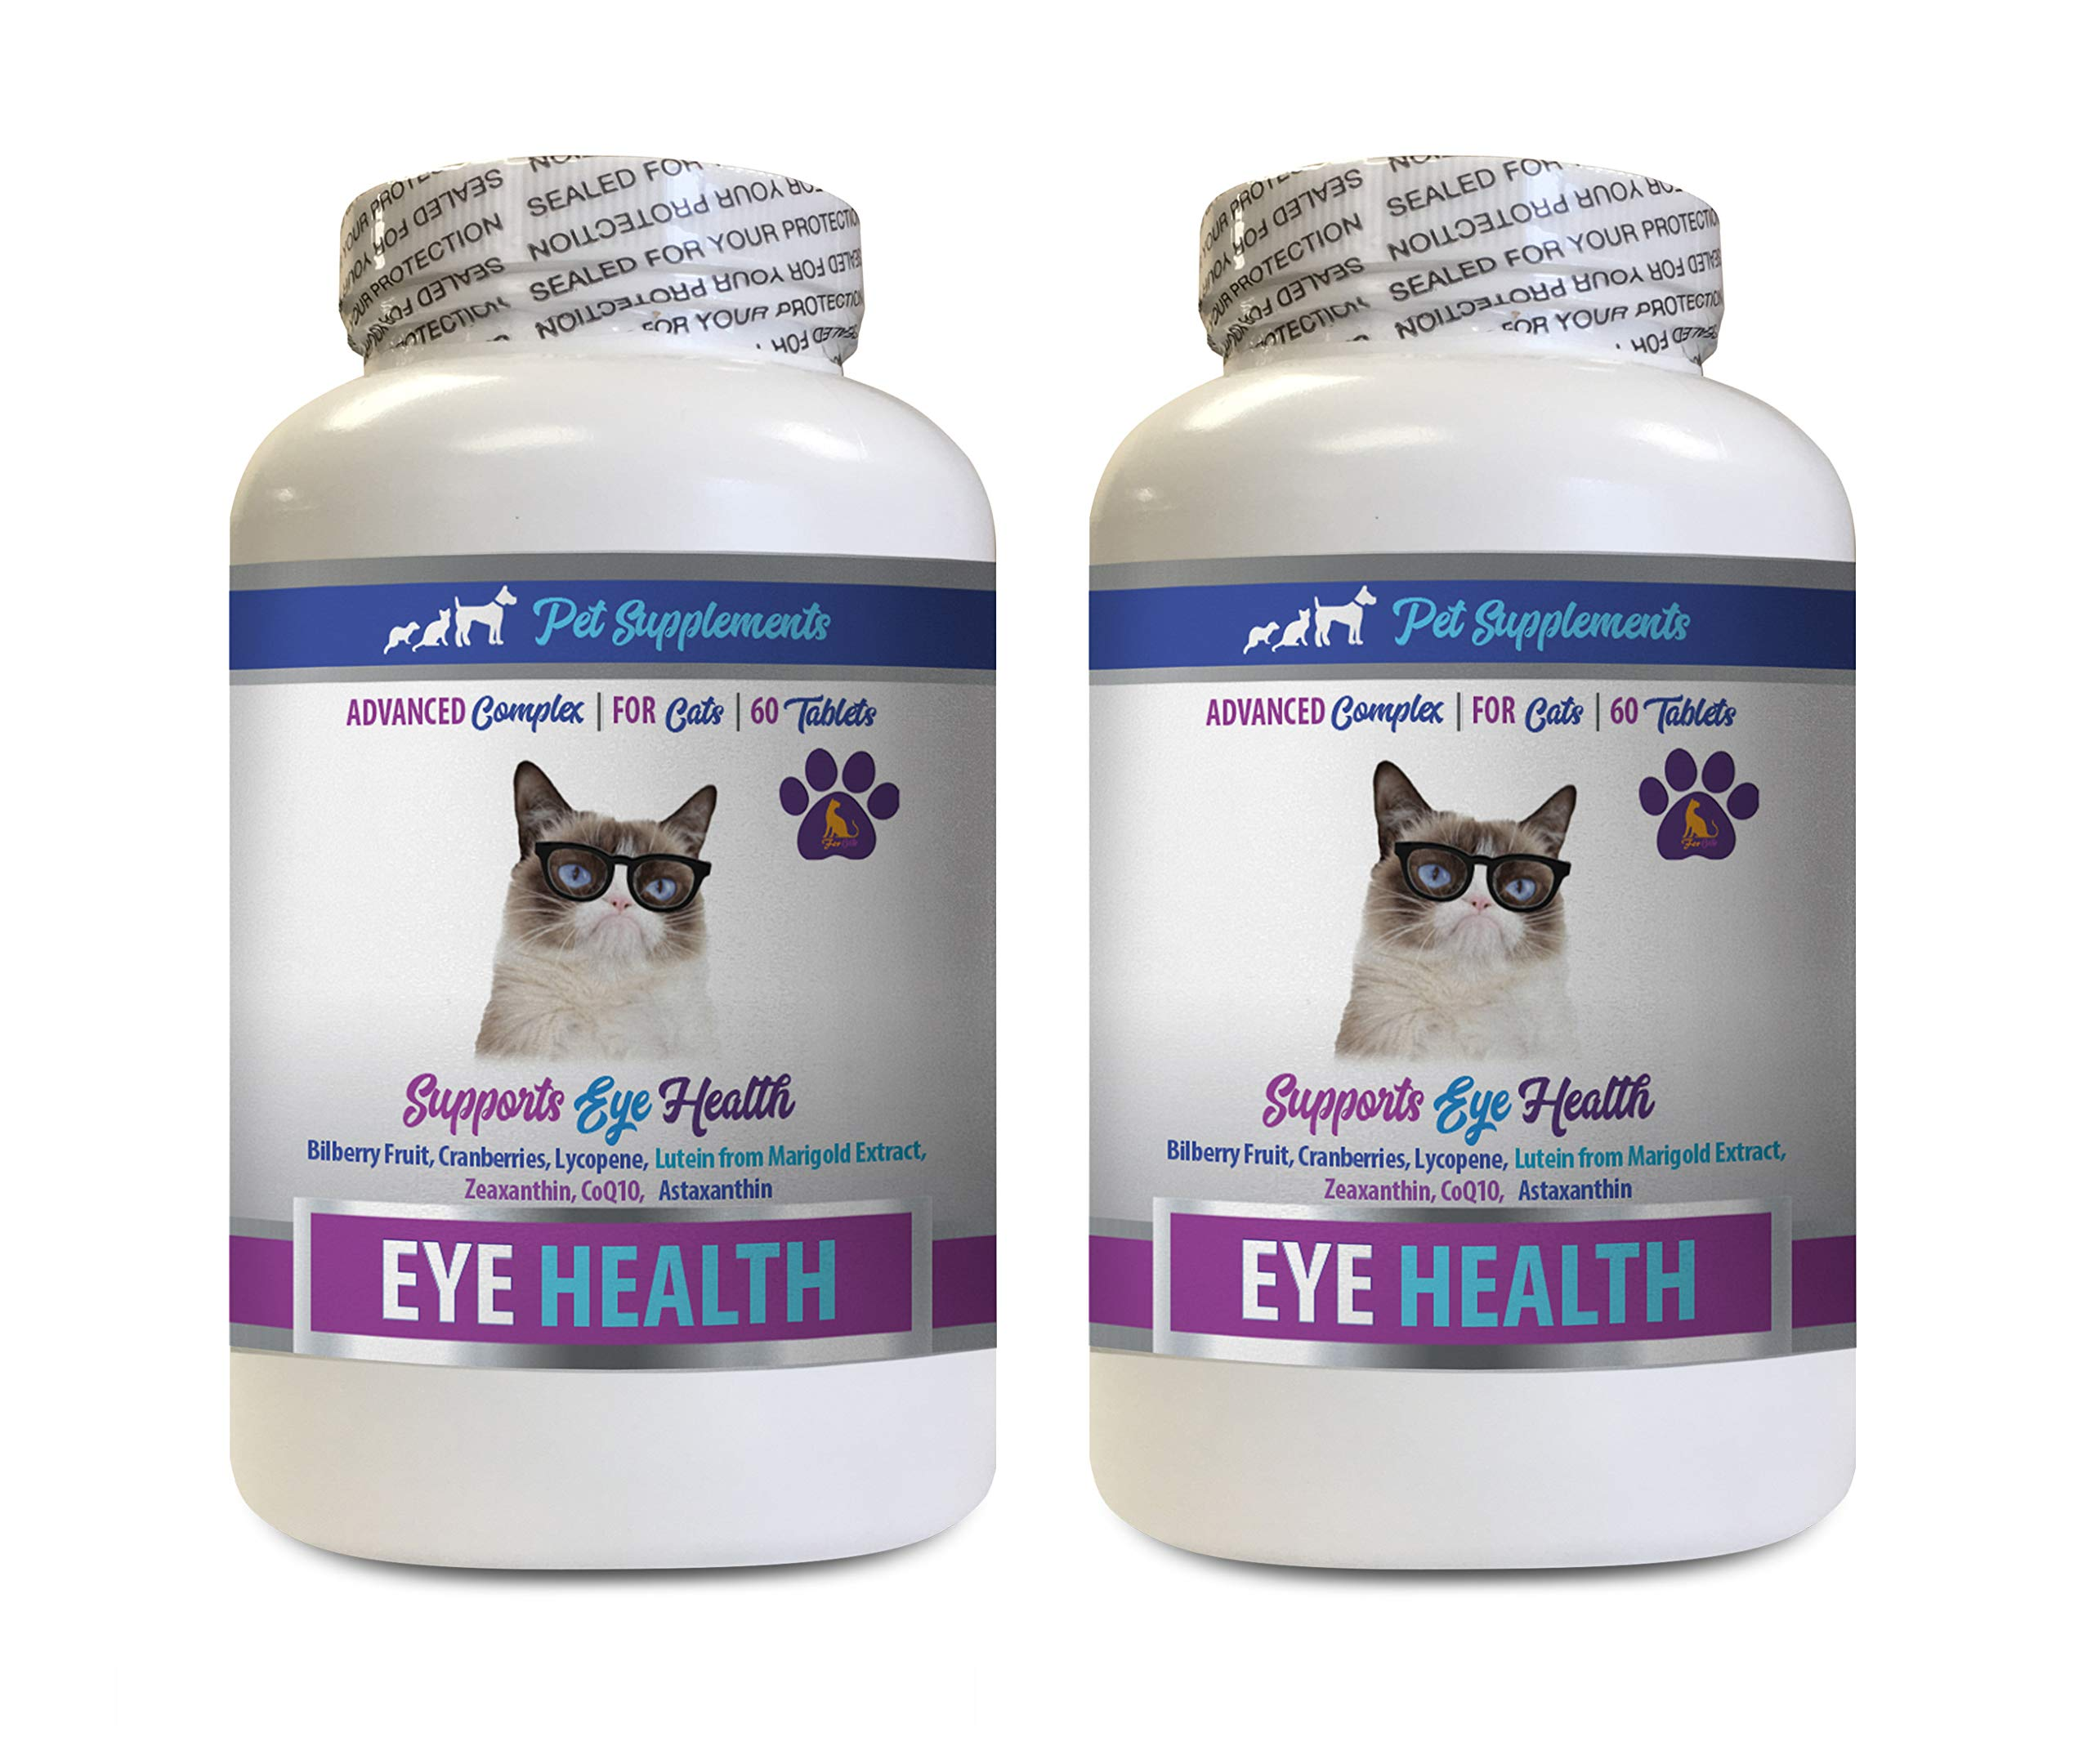 PET SUPPLEMENTS Eye Support for Cats - Cats Eye Health Complex - Advanced Formula for Eye Sight - Immune Boost - cat lactobacillus - 2 Bottles (120 Tablets) by PET SUPPLEMENTS